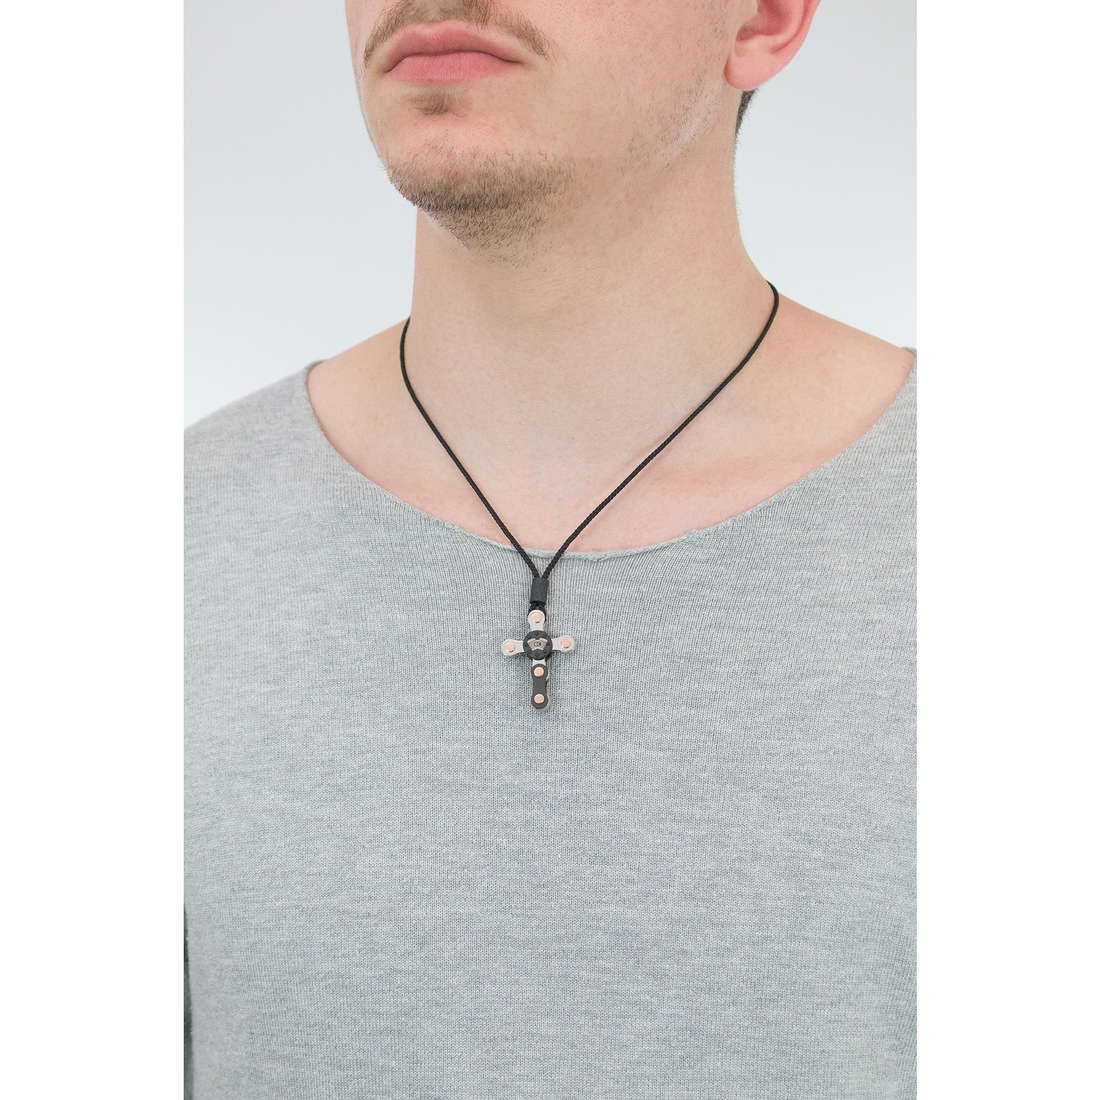 Comete necklaces 8Cilindri man UGL 536 photo wearing